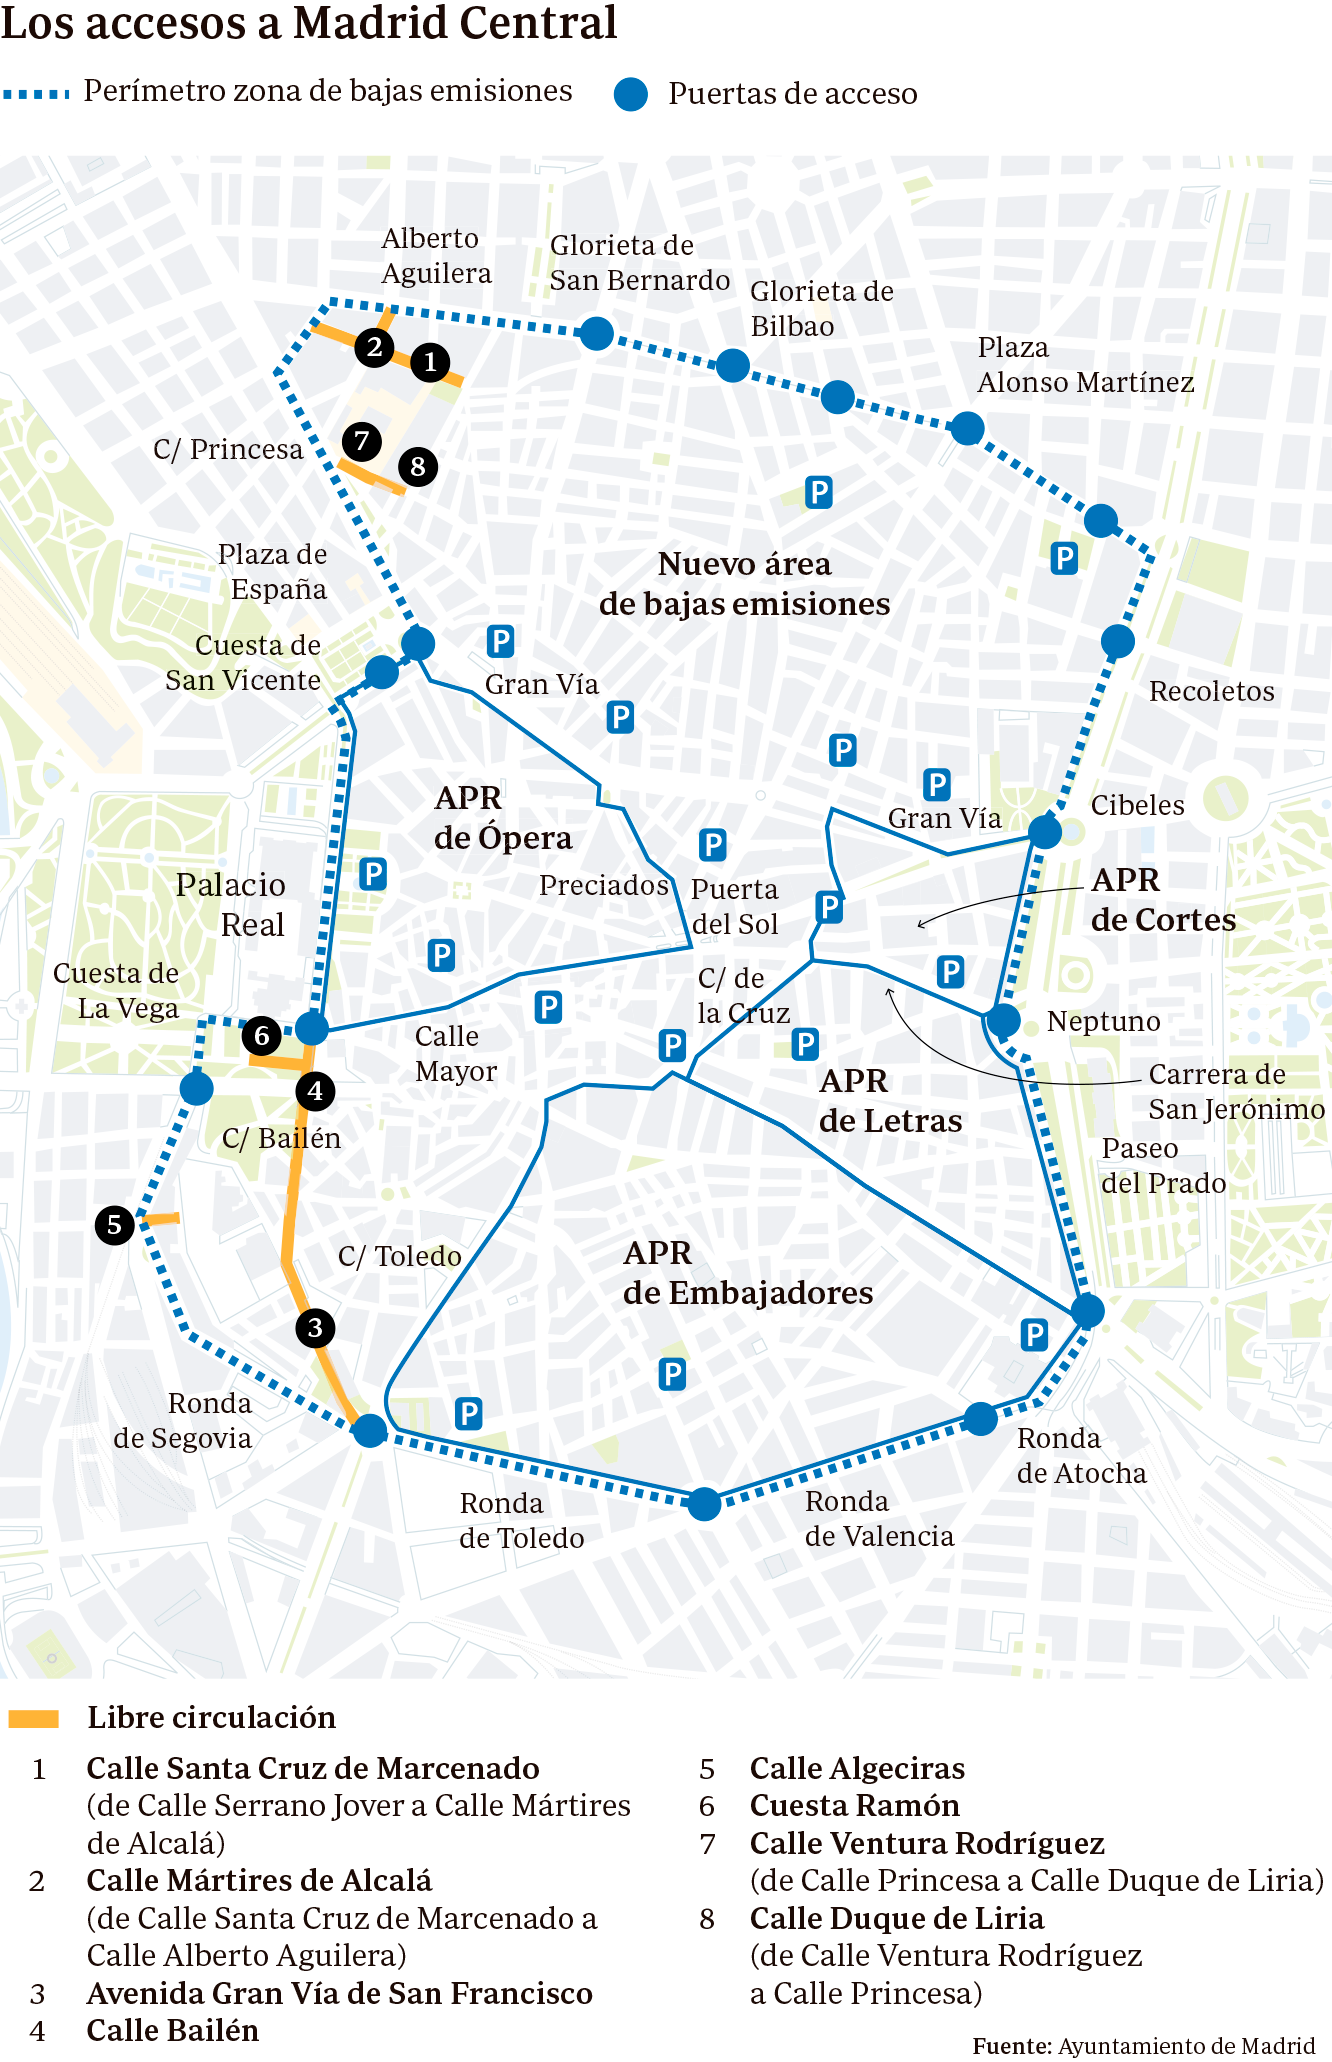 Mapa perimetral de Madrid Central